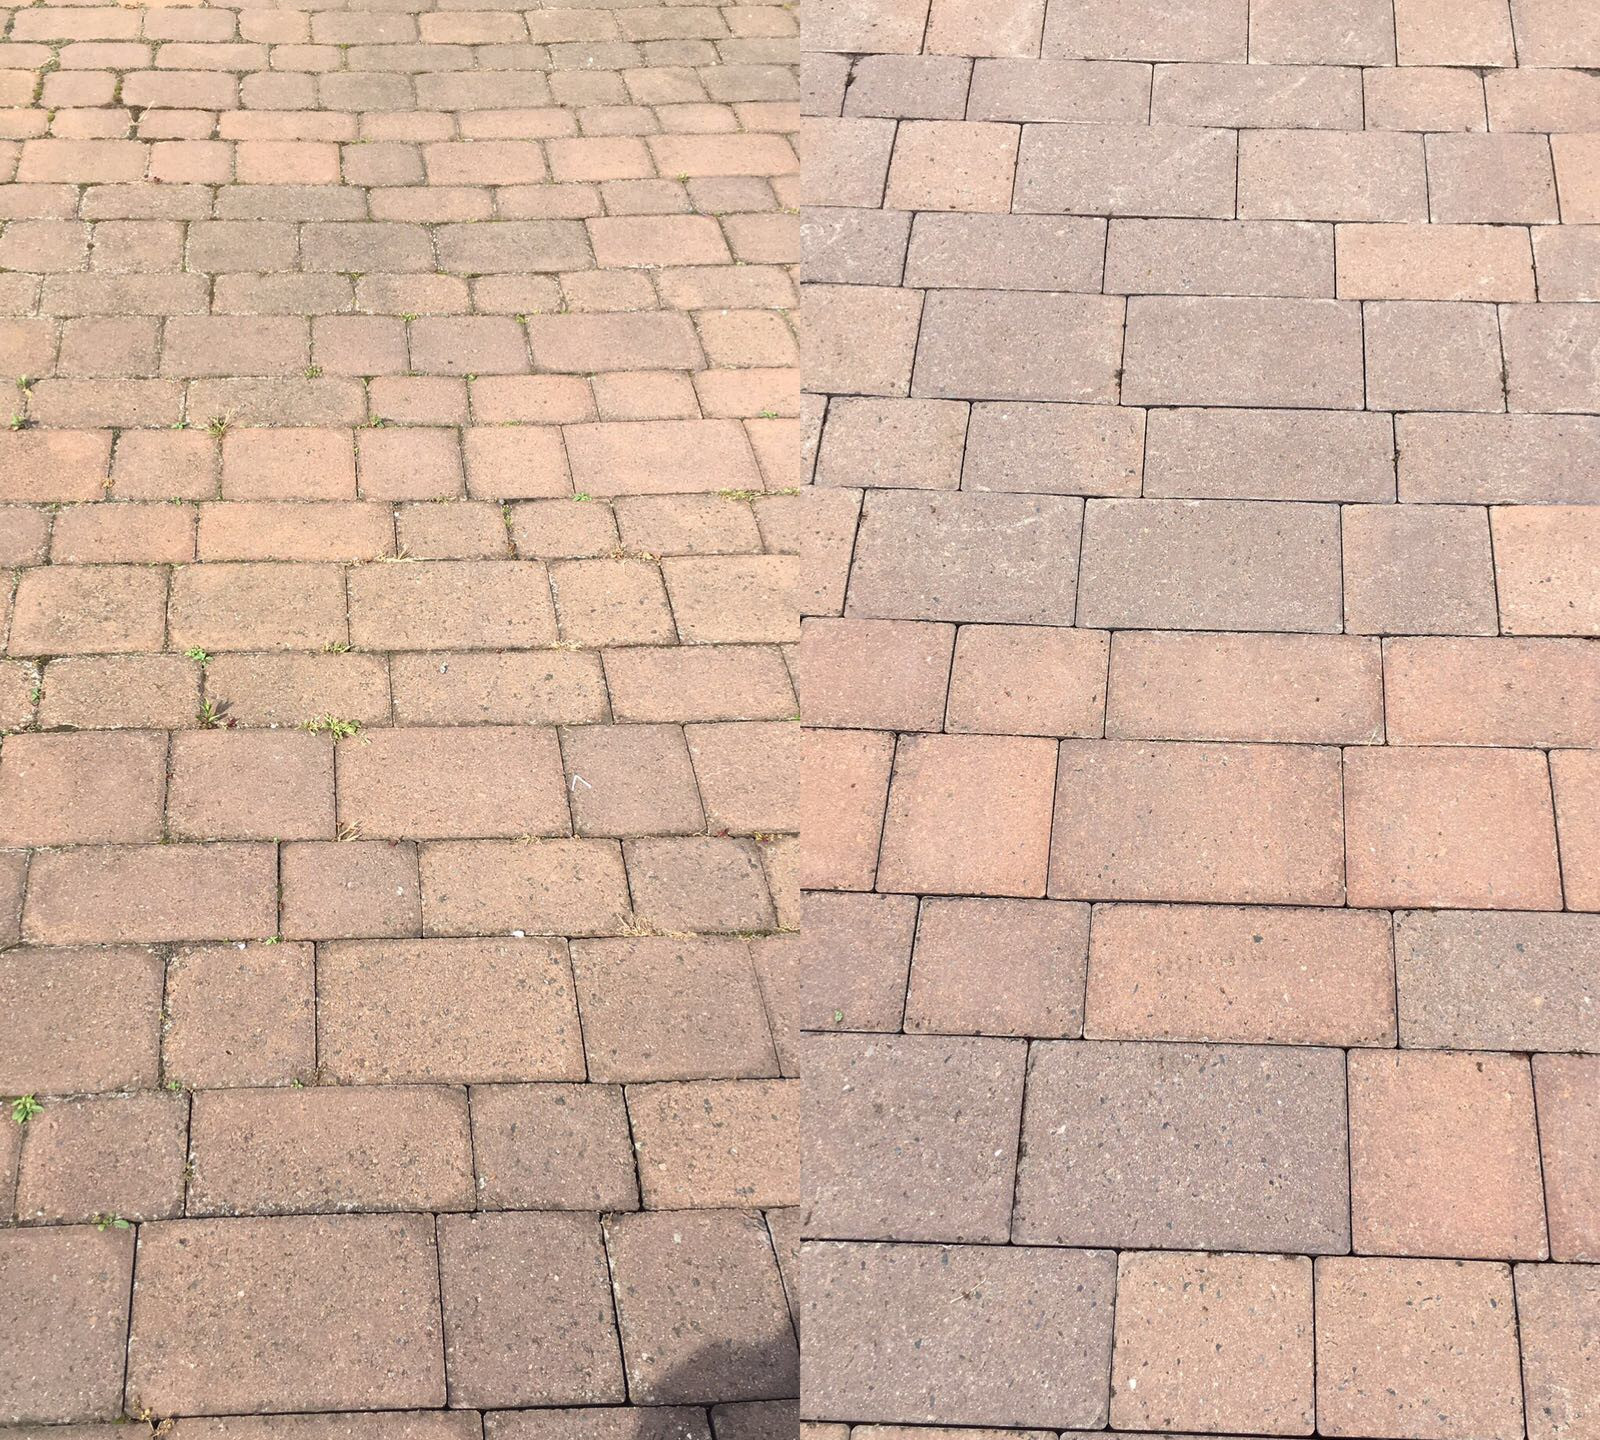 Block Paving Before/After